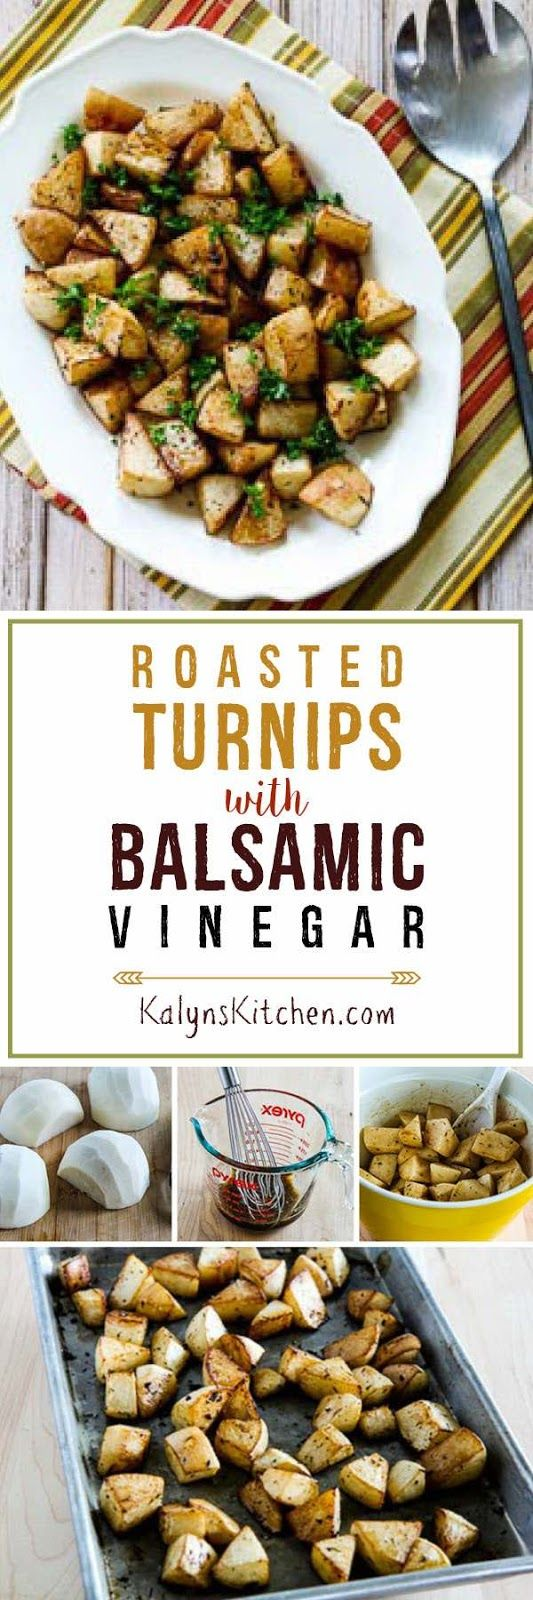 Sometimes turnips don't get much respect, but these Roasted Turnips with Balsamic Vinegar and Thyme are delicious and this recipe is low-carb, gluten-free, low-glycemic, Whole 30,  Paleo, and South Beach Diet friendly!  [found on KalynsKitchen.com]